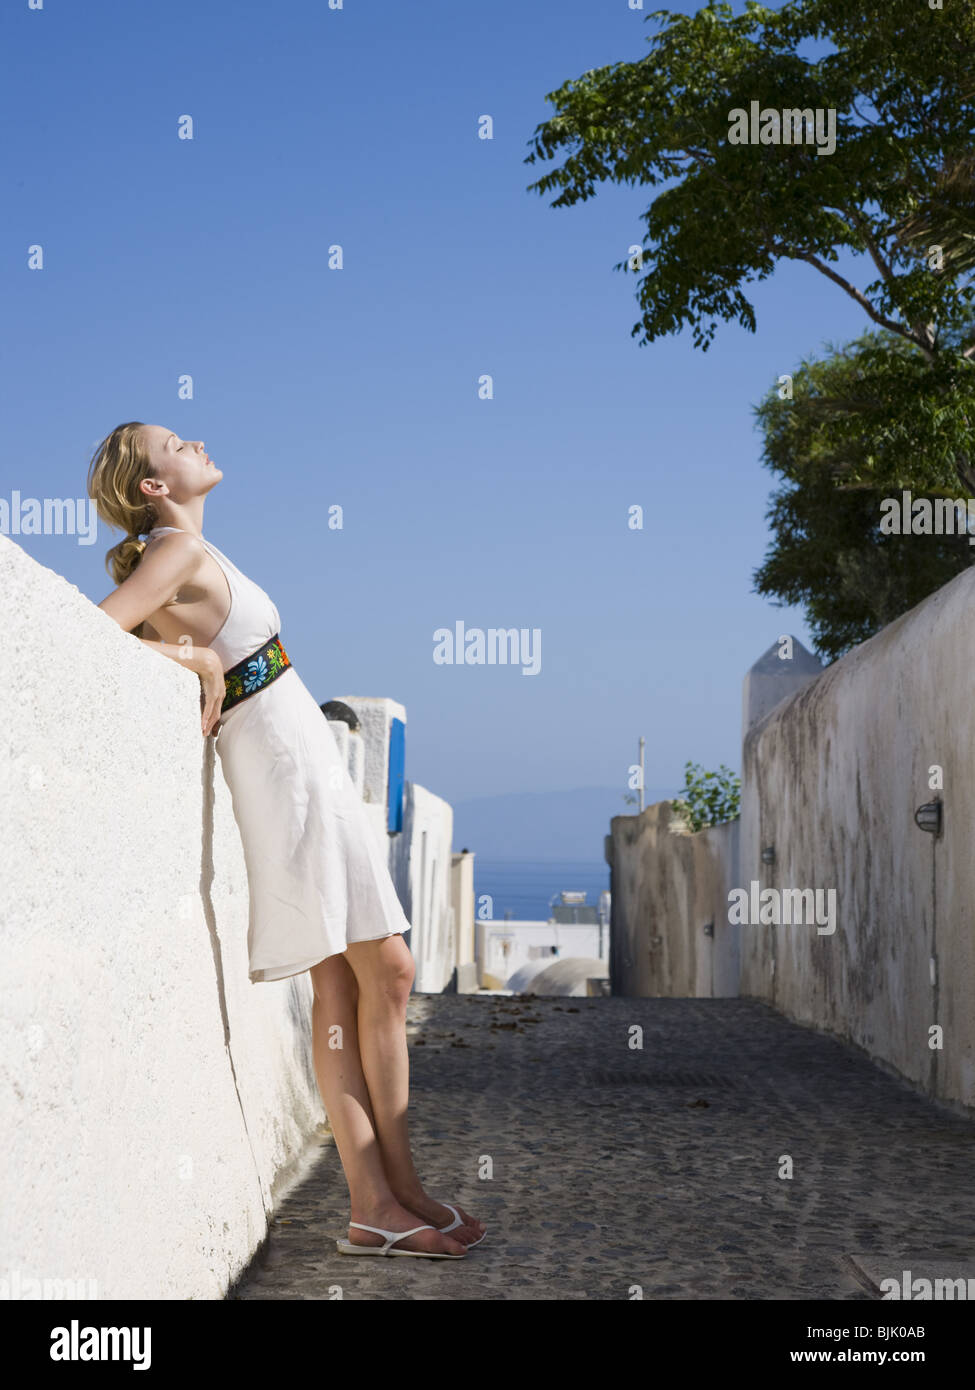 Woman leaning on wall outdoors smiling Photo Stock